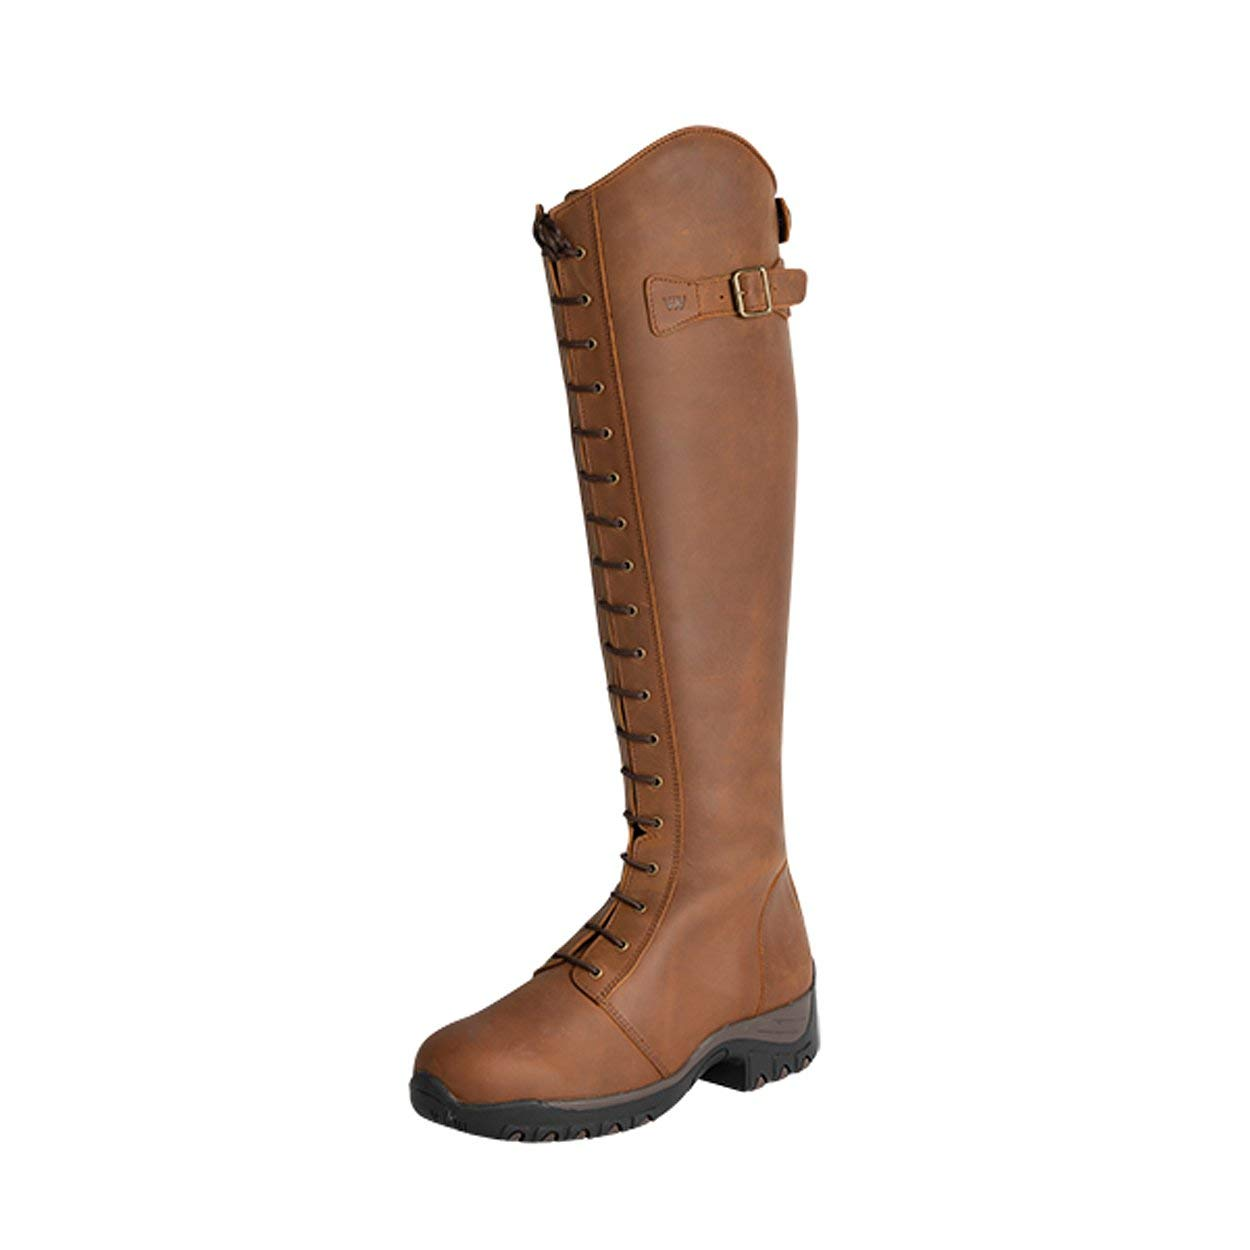 Cognac Woof Wear Fonte vert Marvao Long Riding bottes 43 EU